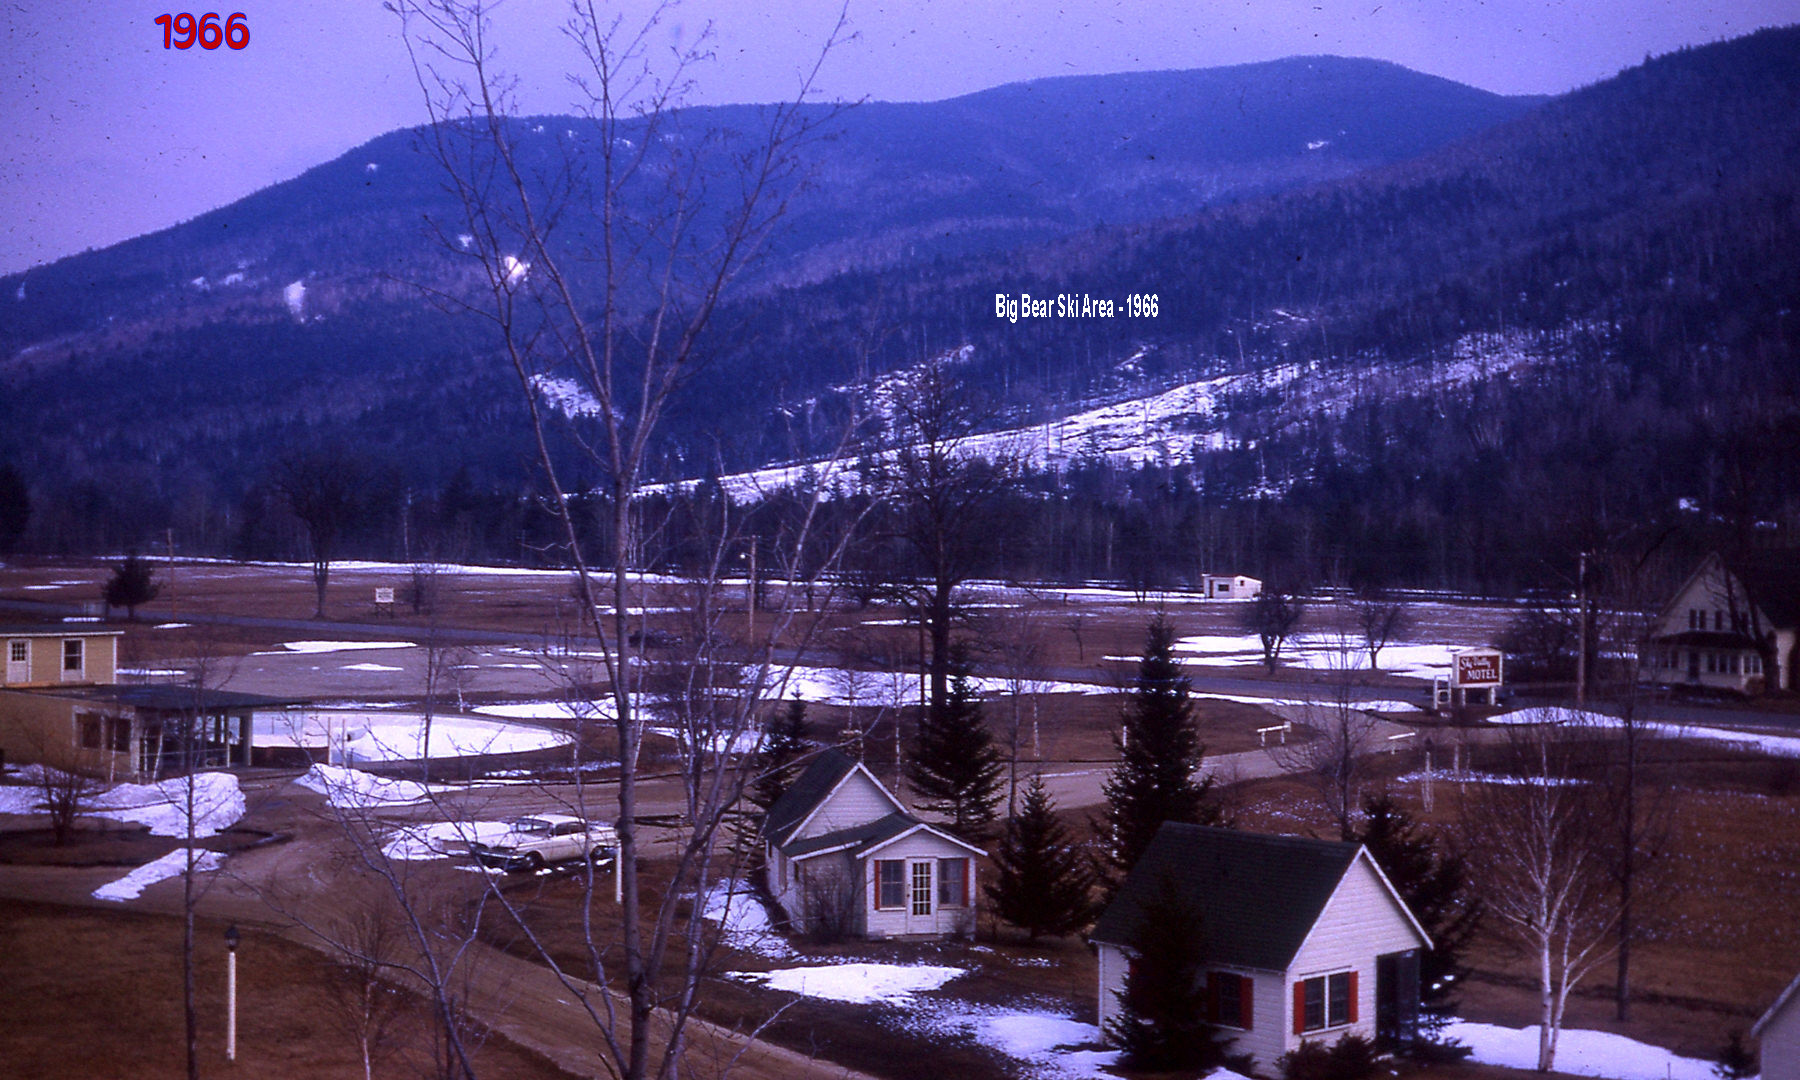 Village Area - 1966 Big Bear Ski Clearing - Gene Chandler house far right side